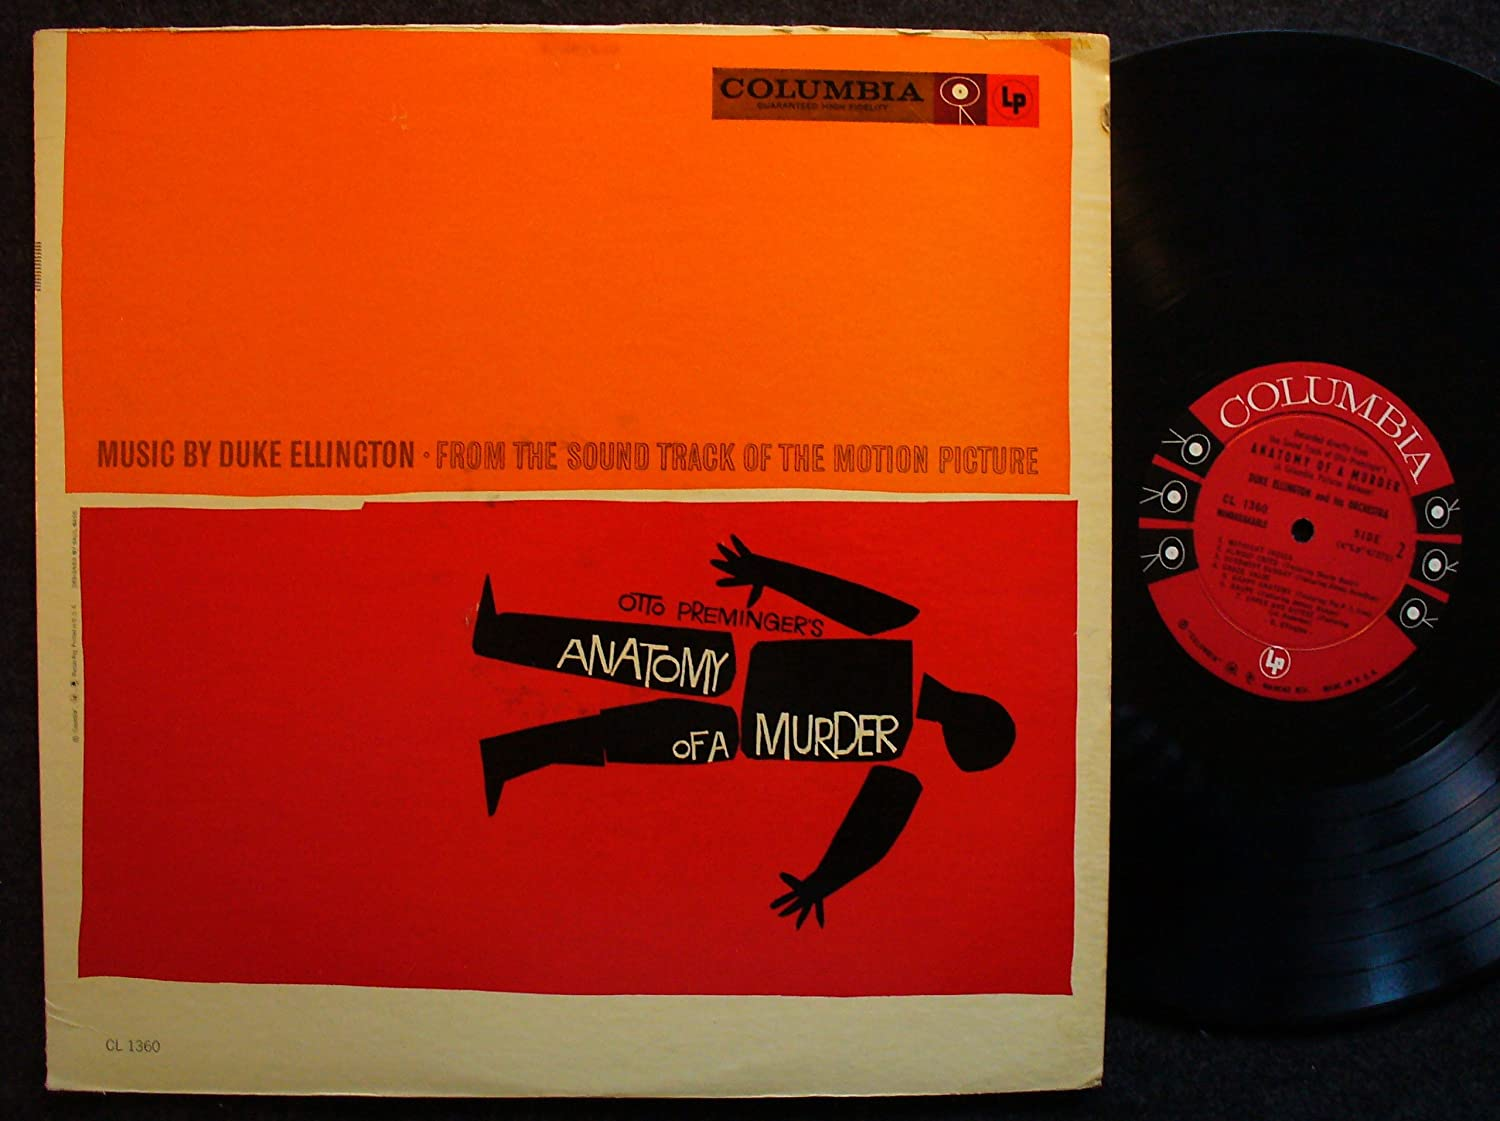 Anatomy of a Murder / Duke Ellington; soundtrack - Amazon.com Music